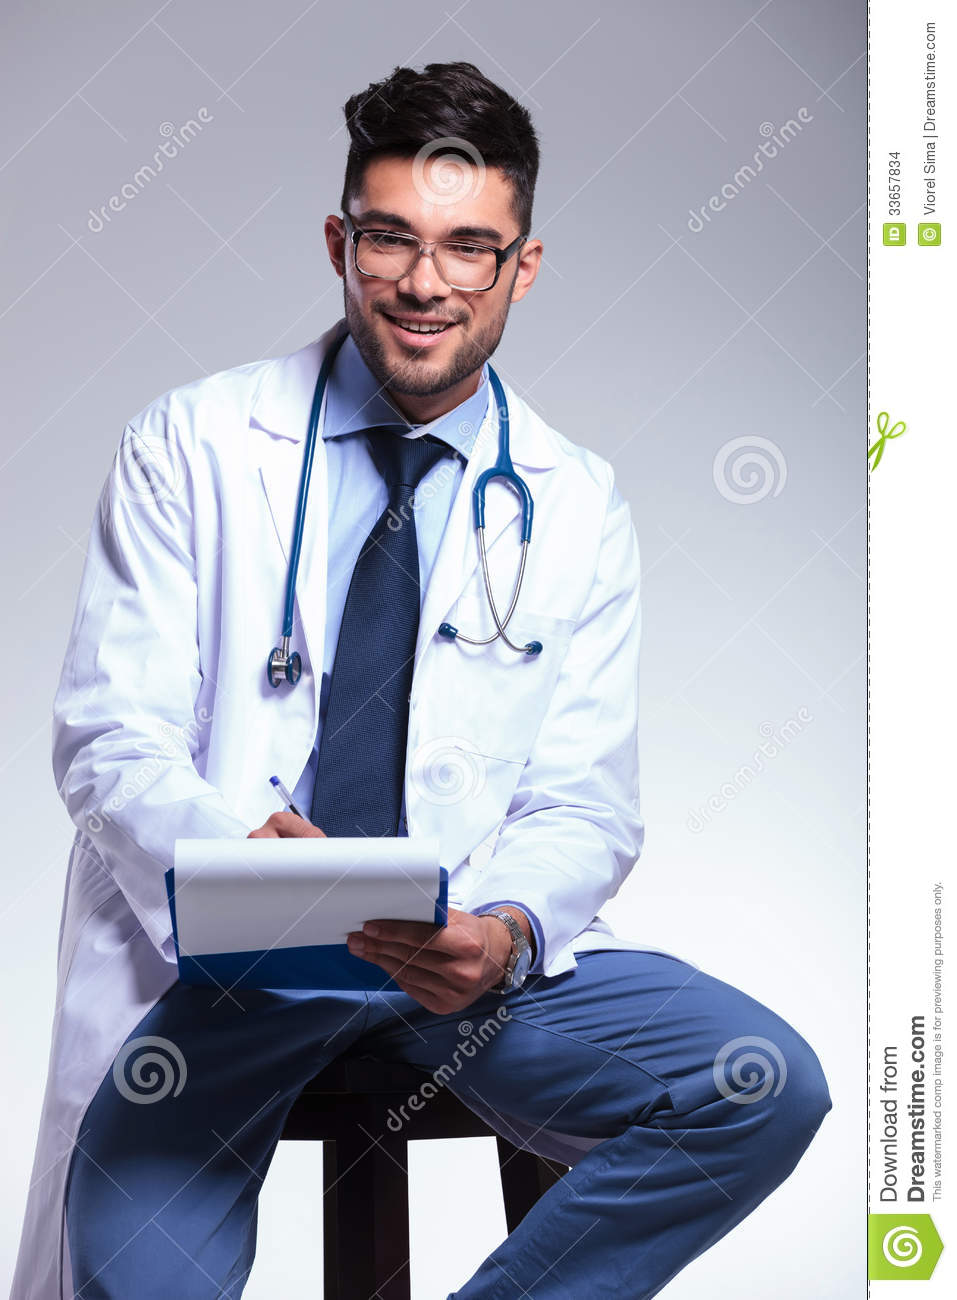 sitting chair hanging co.za seated young doctor writing on clipboard stock photo - image: 33657834